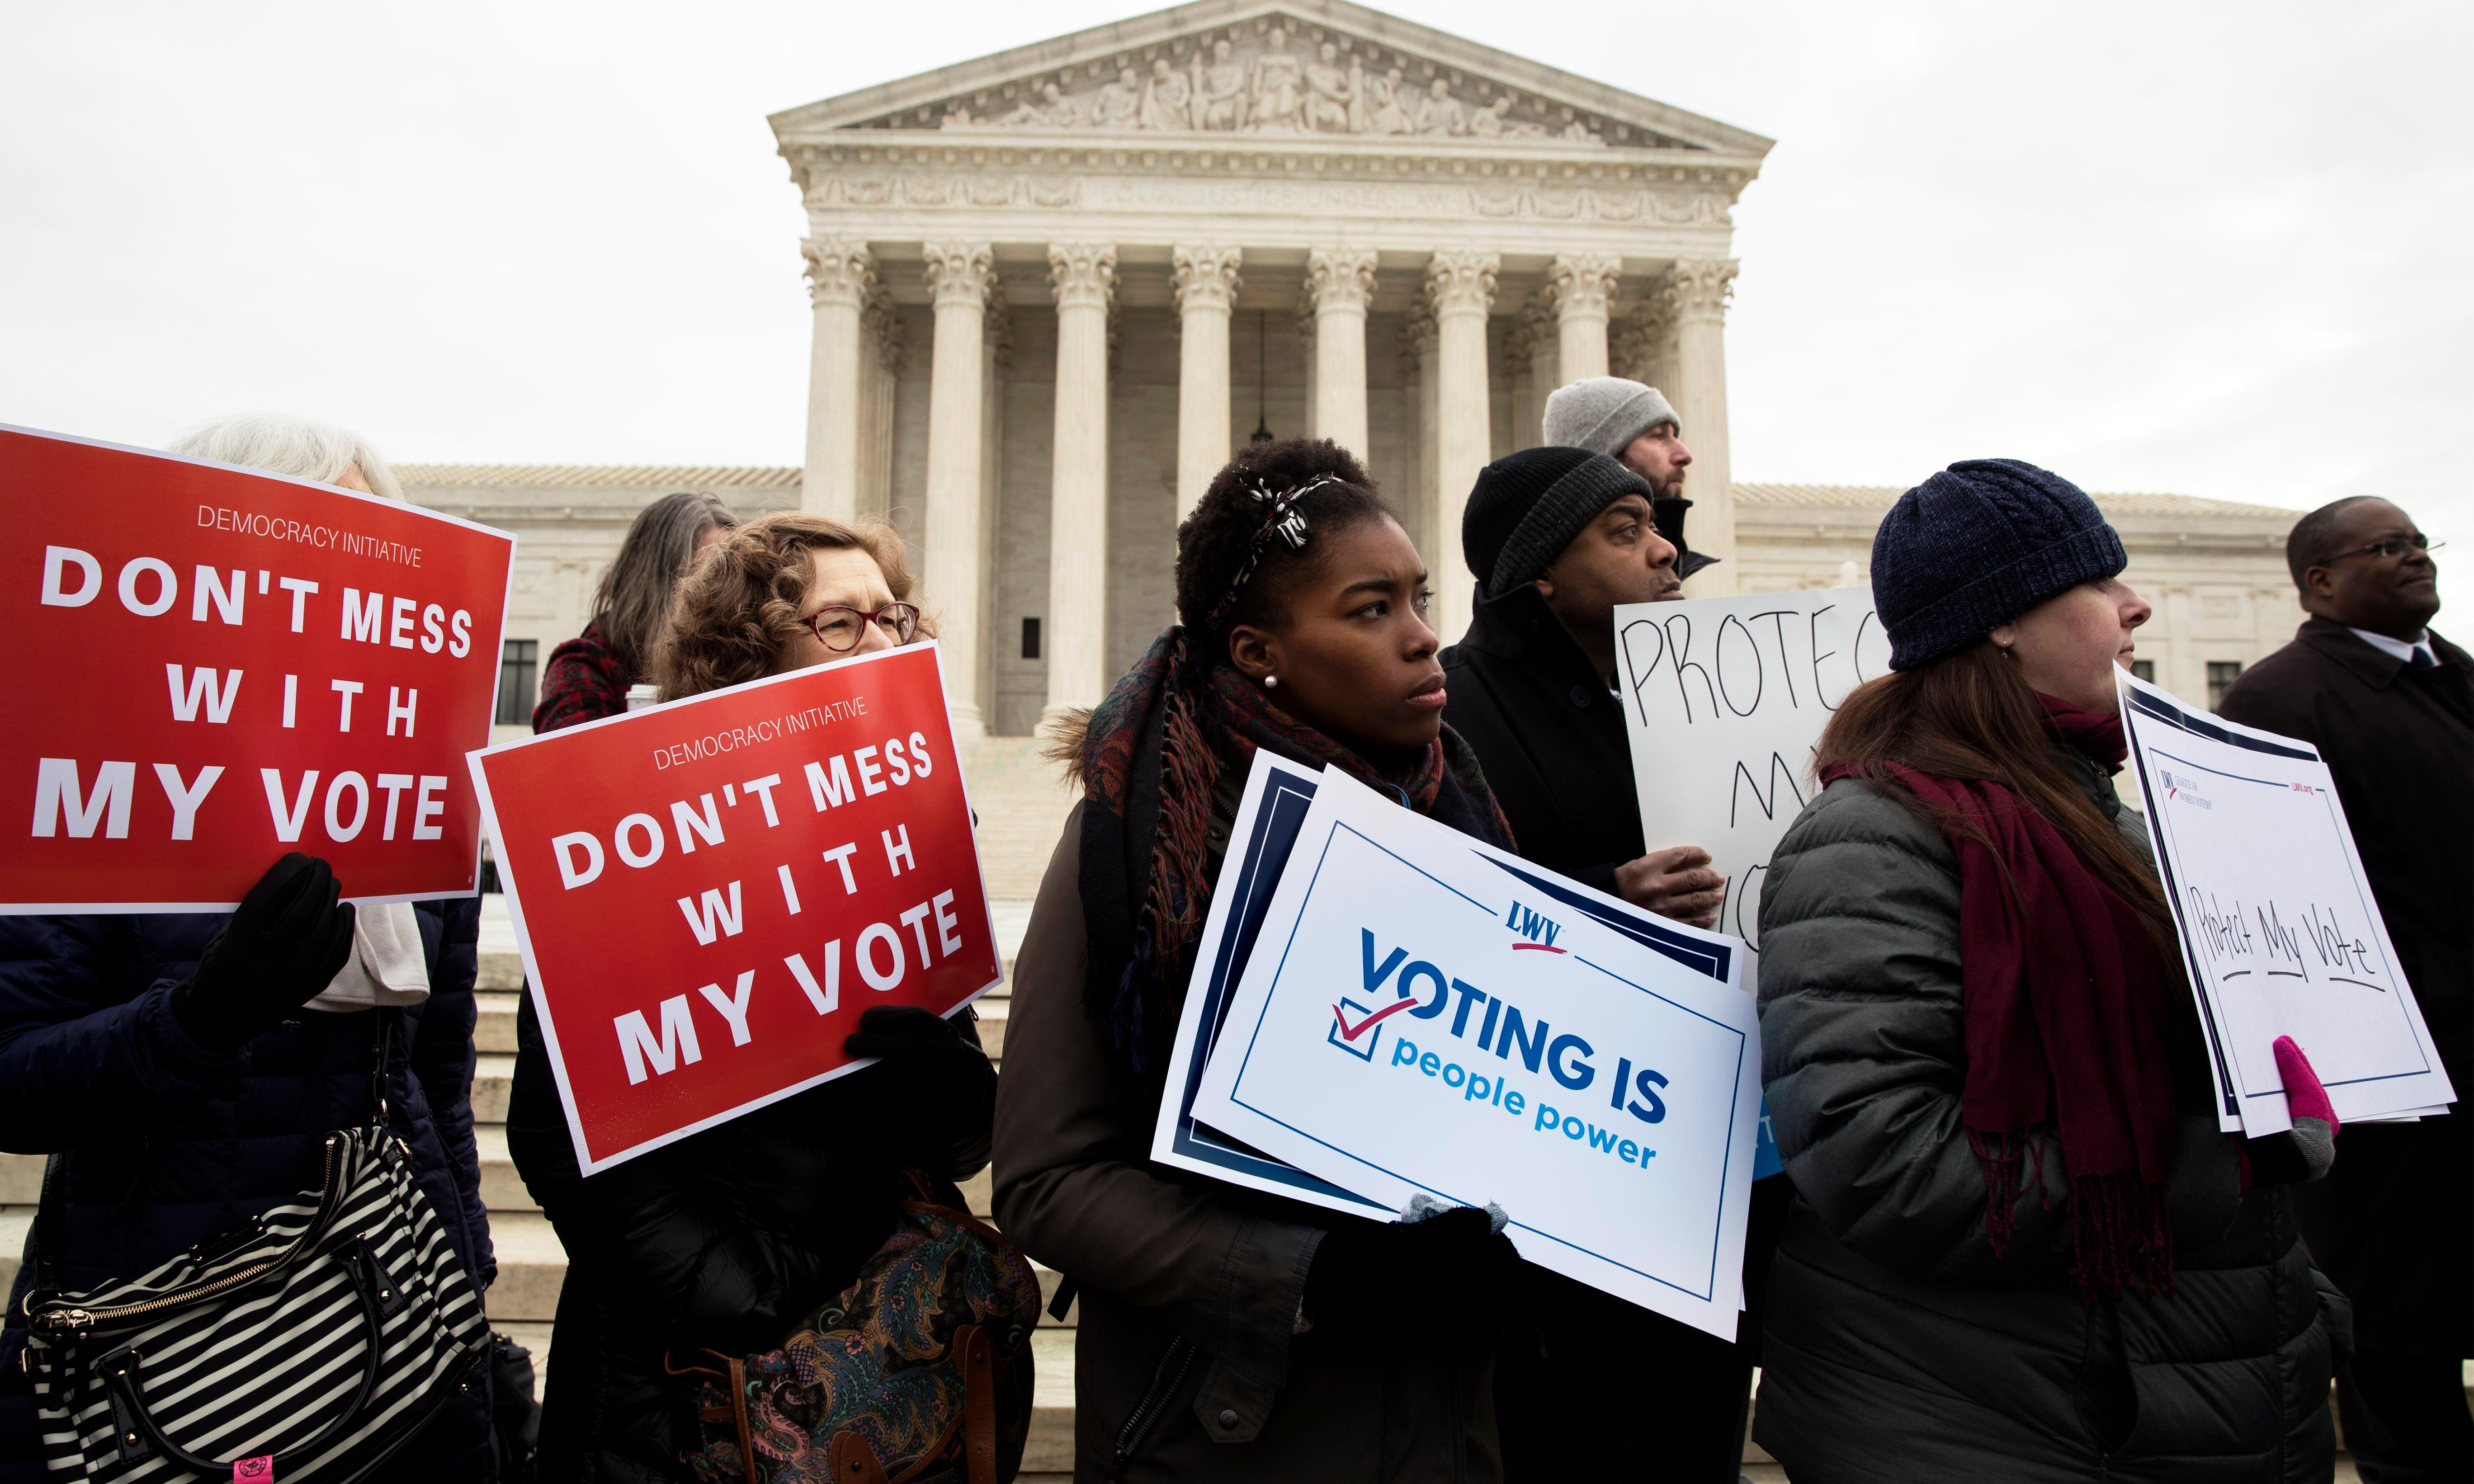 Midterms: how the votes of vulnerable groups are being suppressed